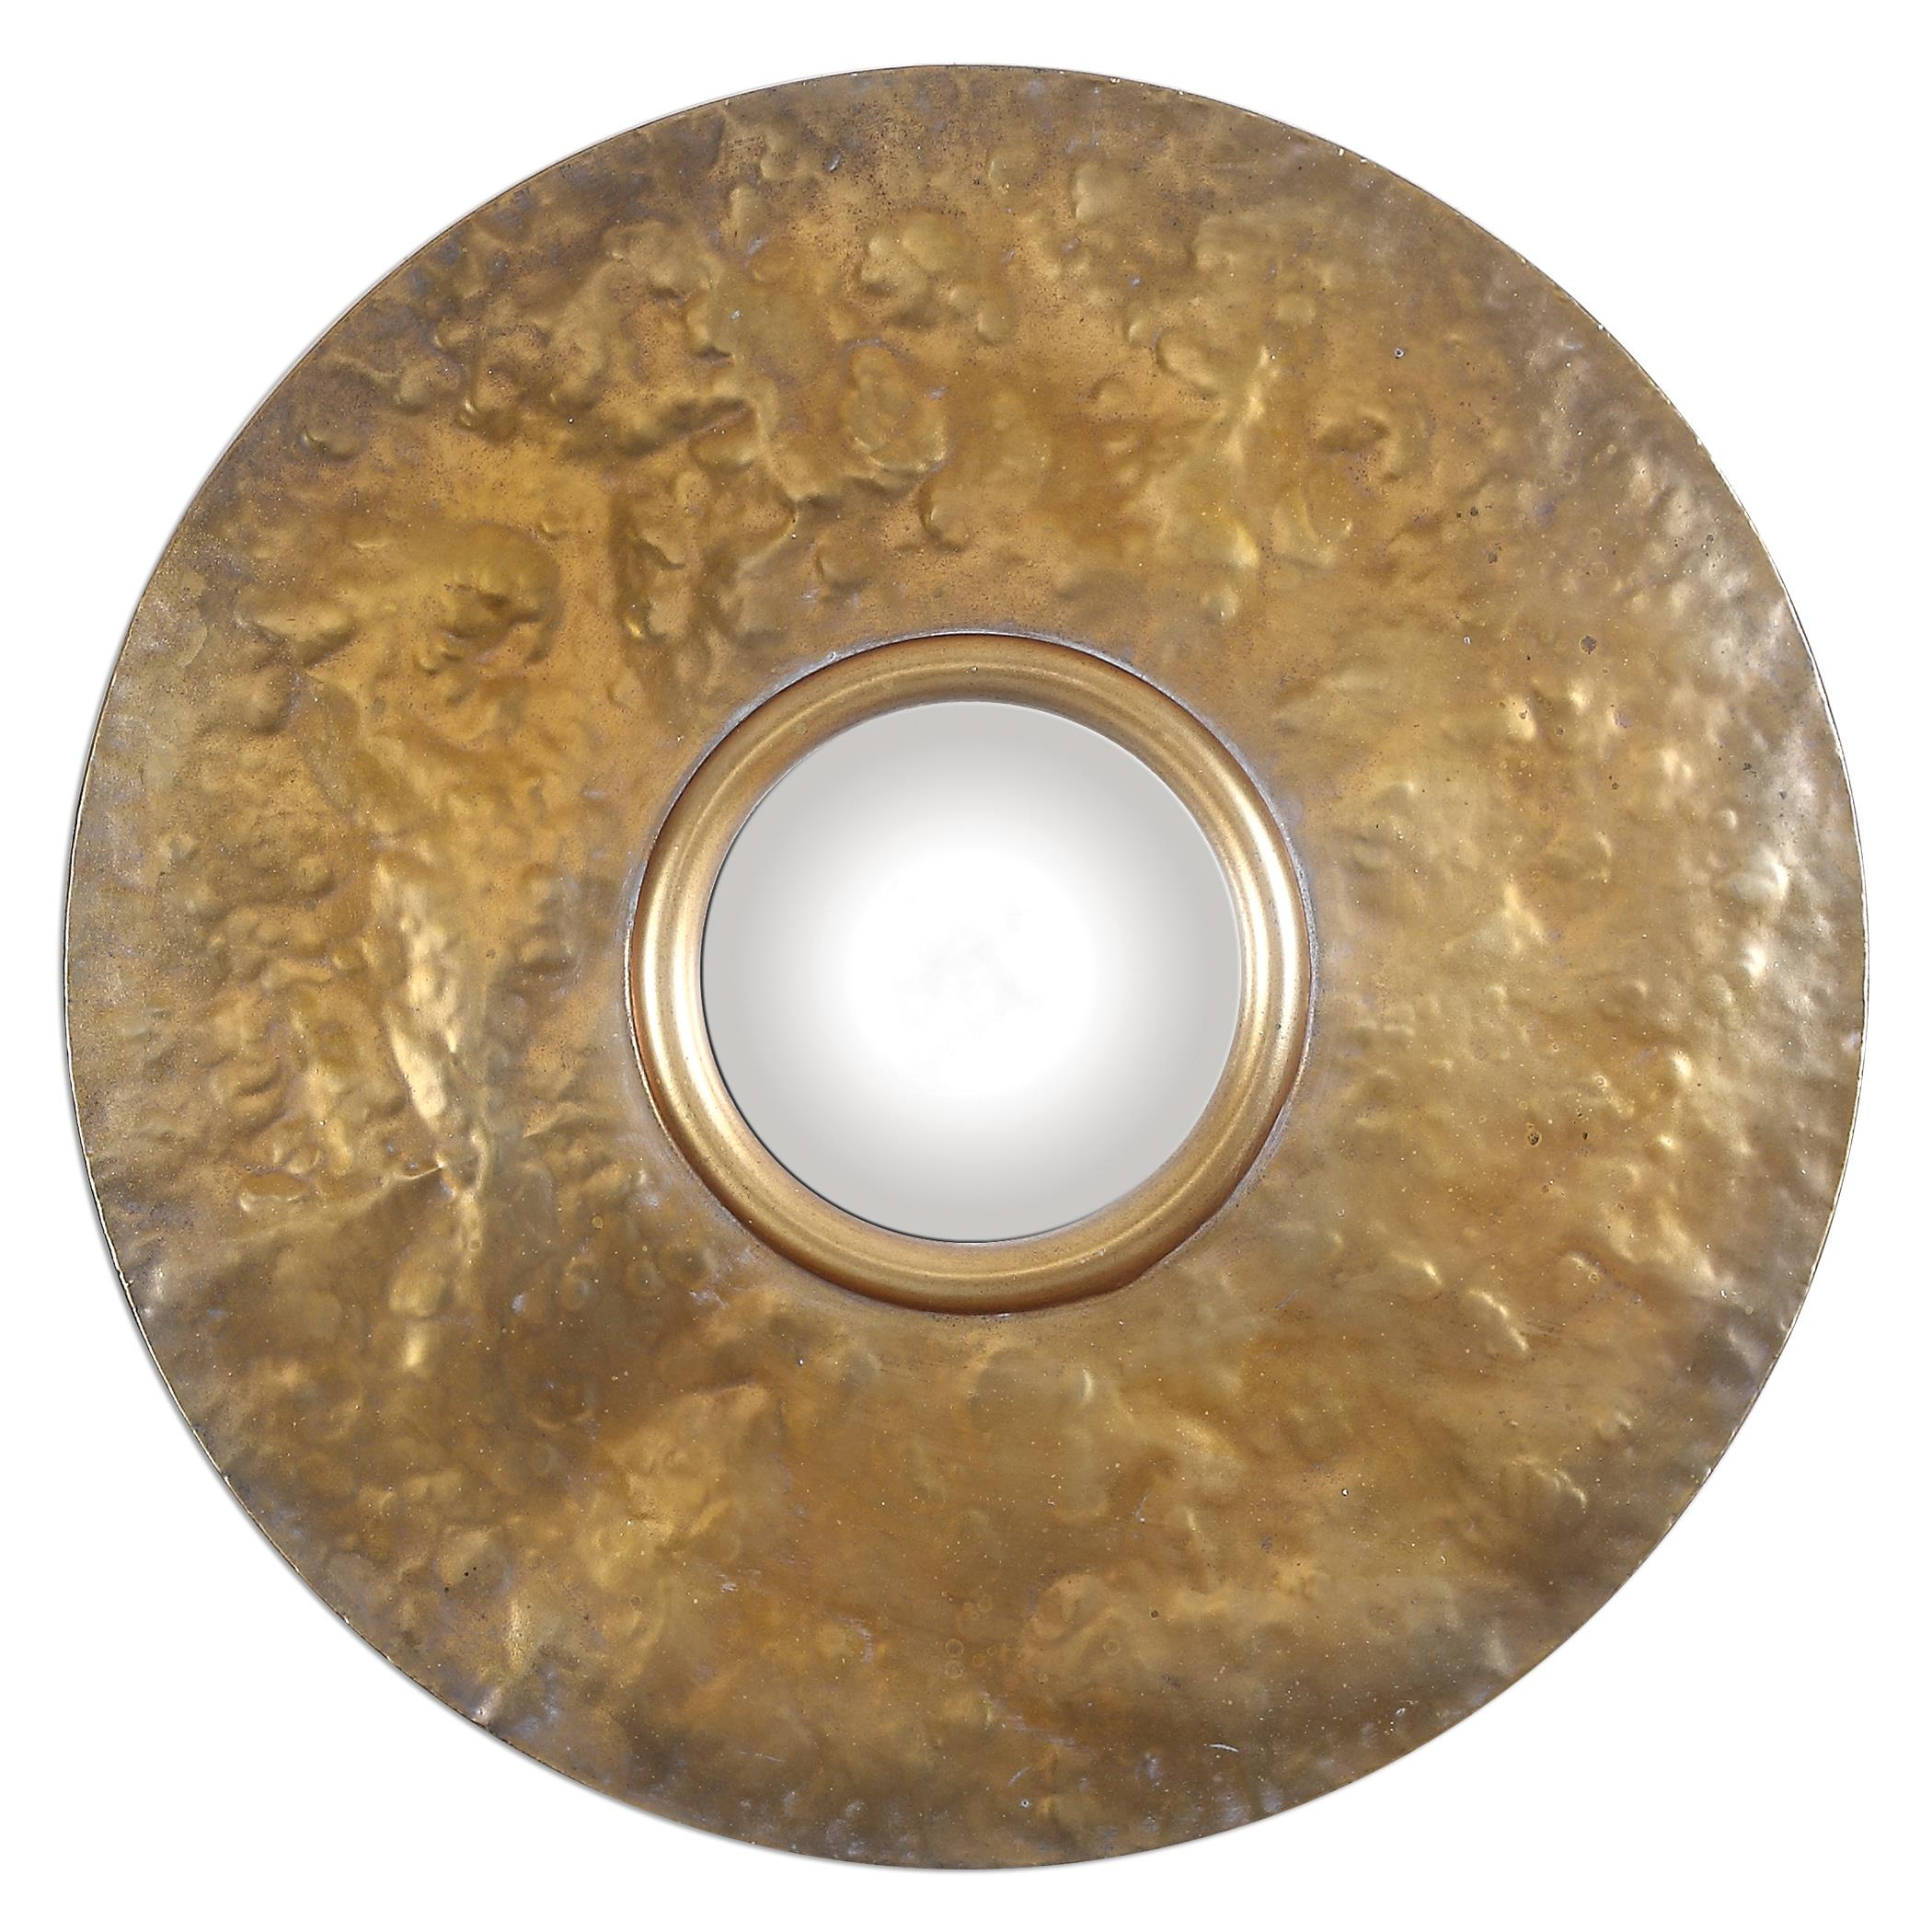 Uttermost Mirrors Nedonas Oxidized Gold Mirror - Item Number: 12936